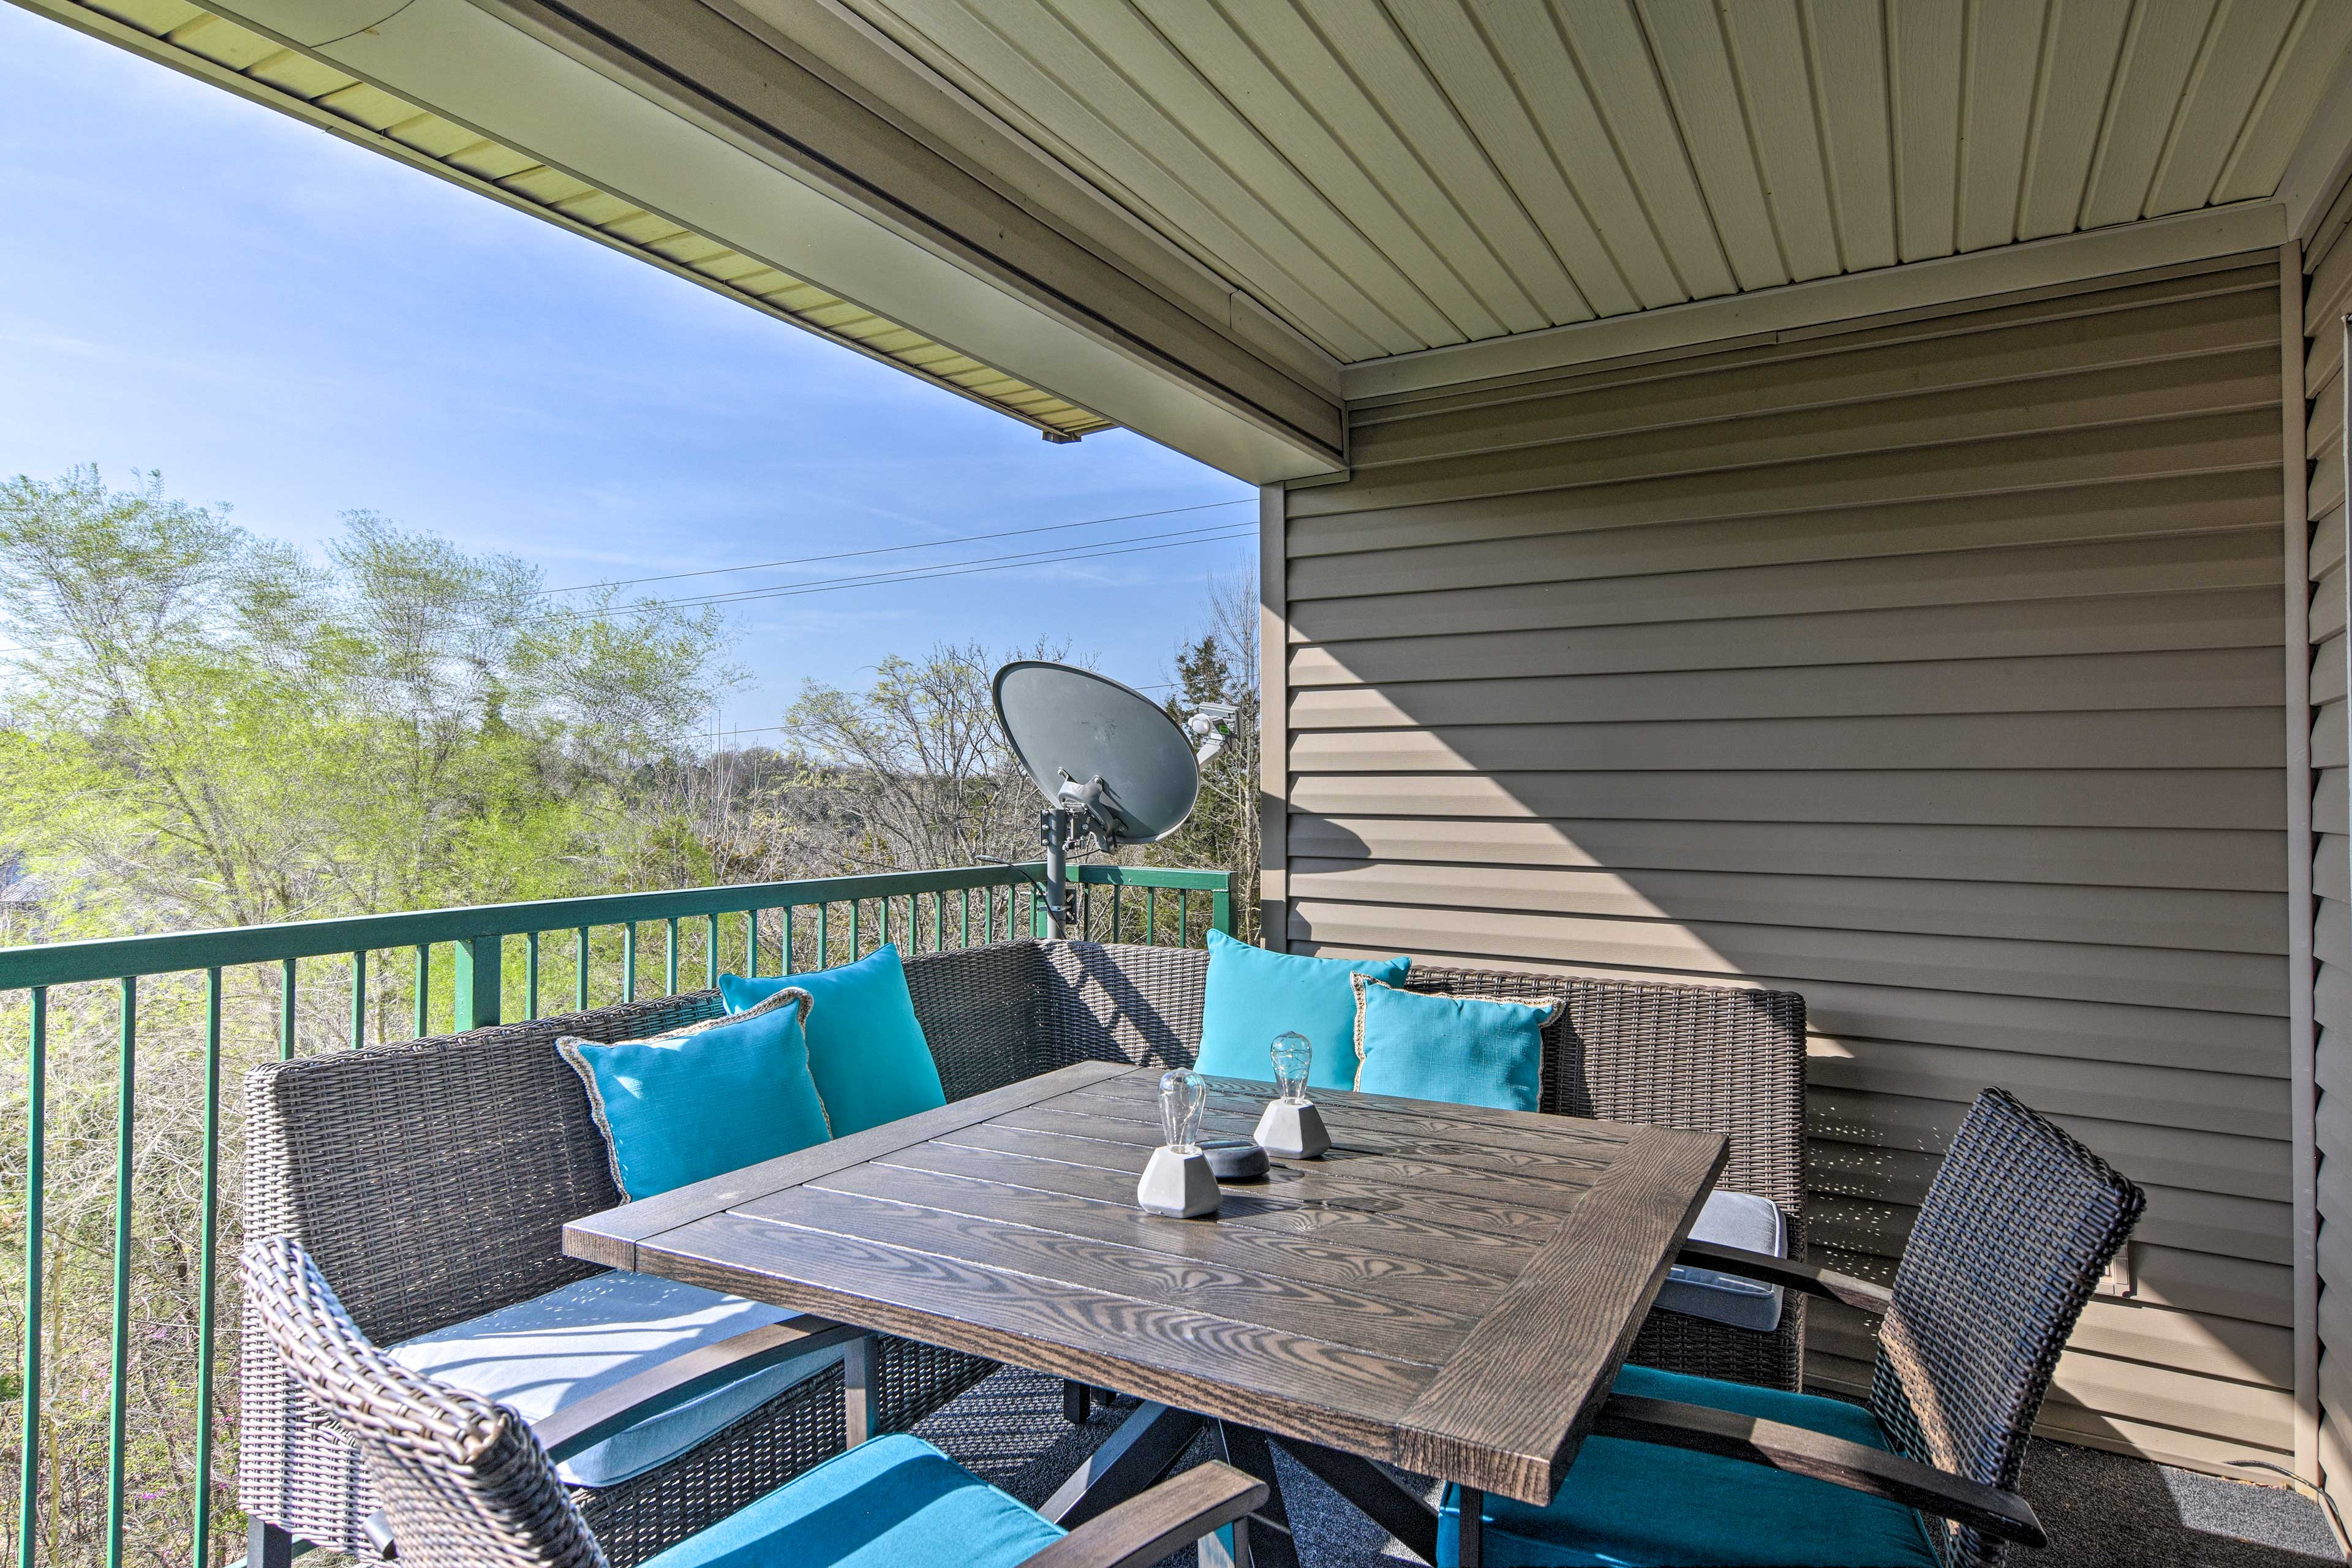 You'll love spending your downtime on the peaceful patio.